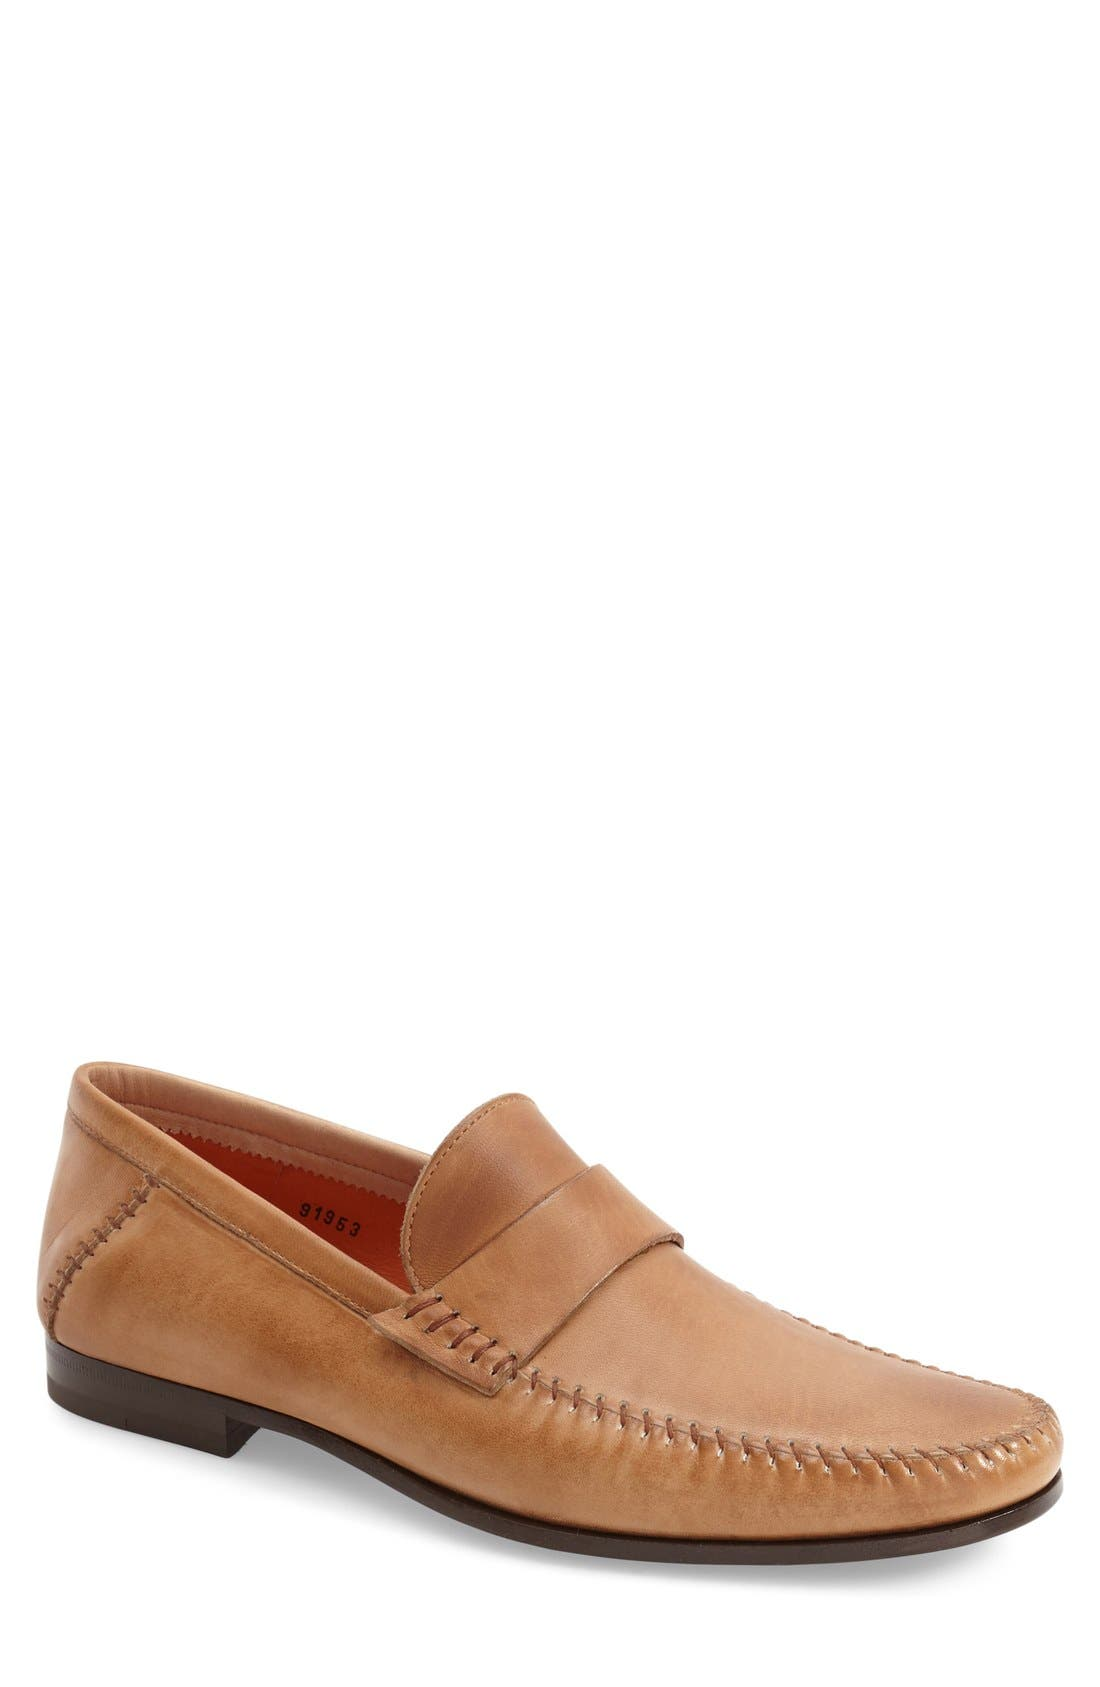 'Paine' Leather Loafer,                             Main thumbnail 1, color,                             Tan